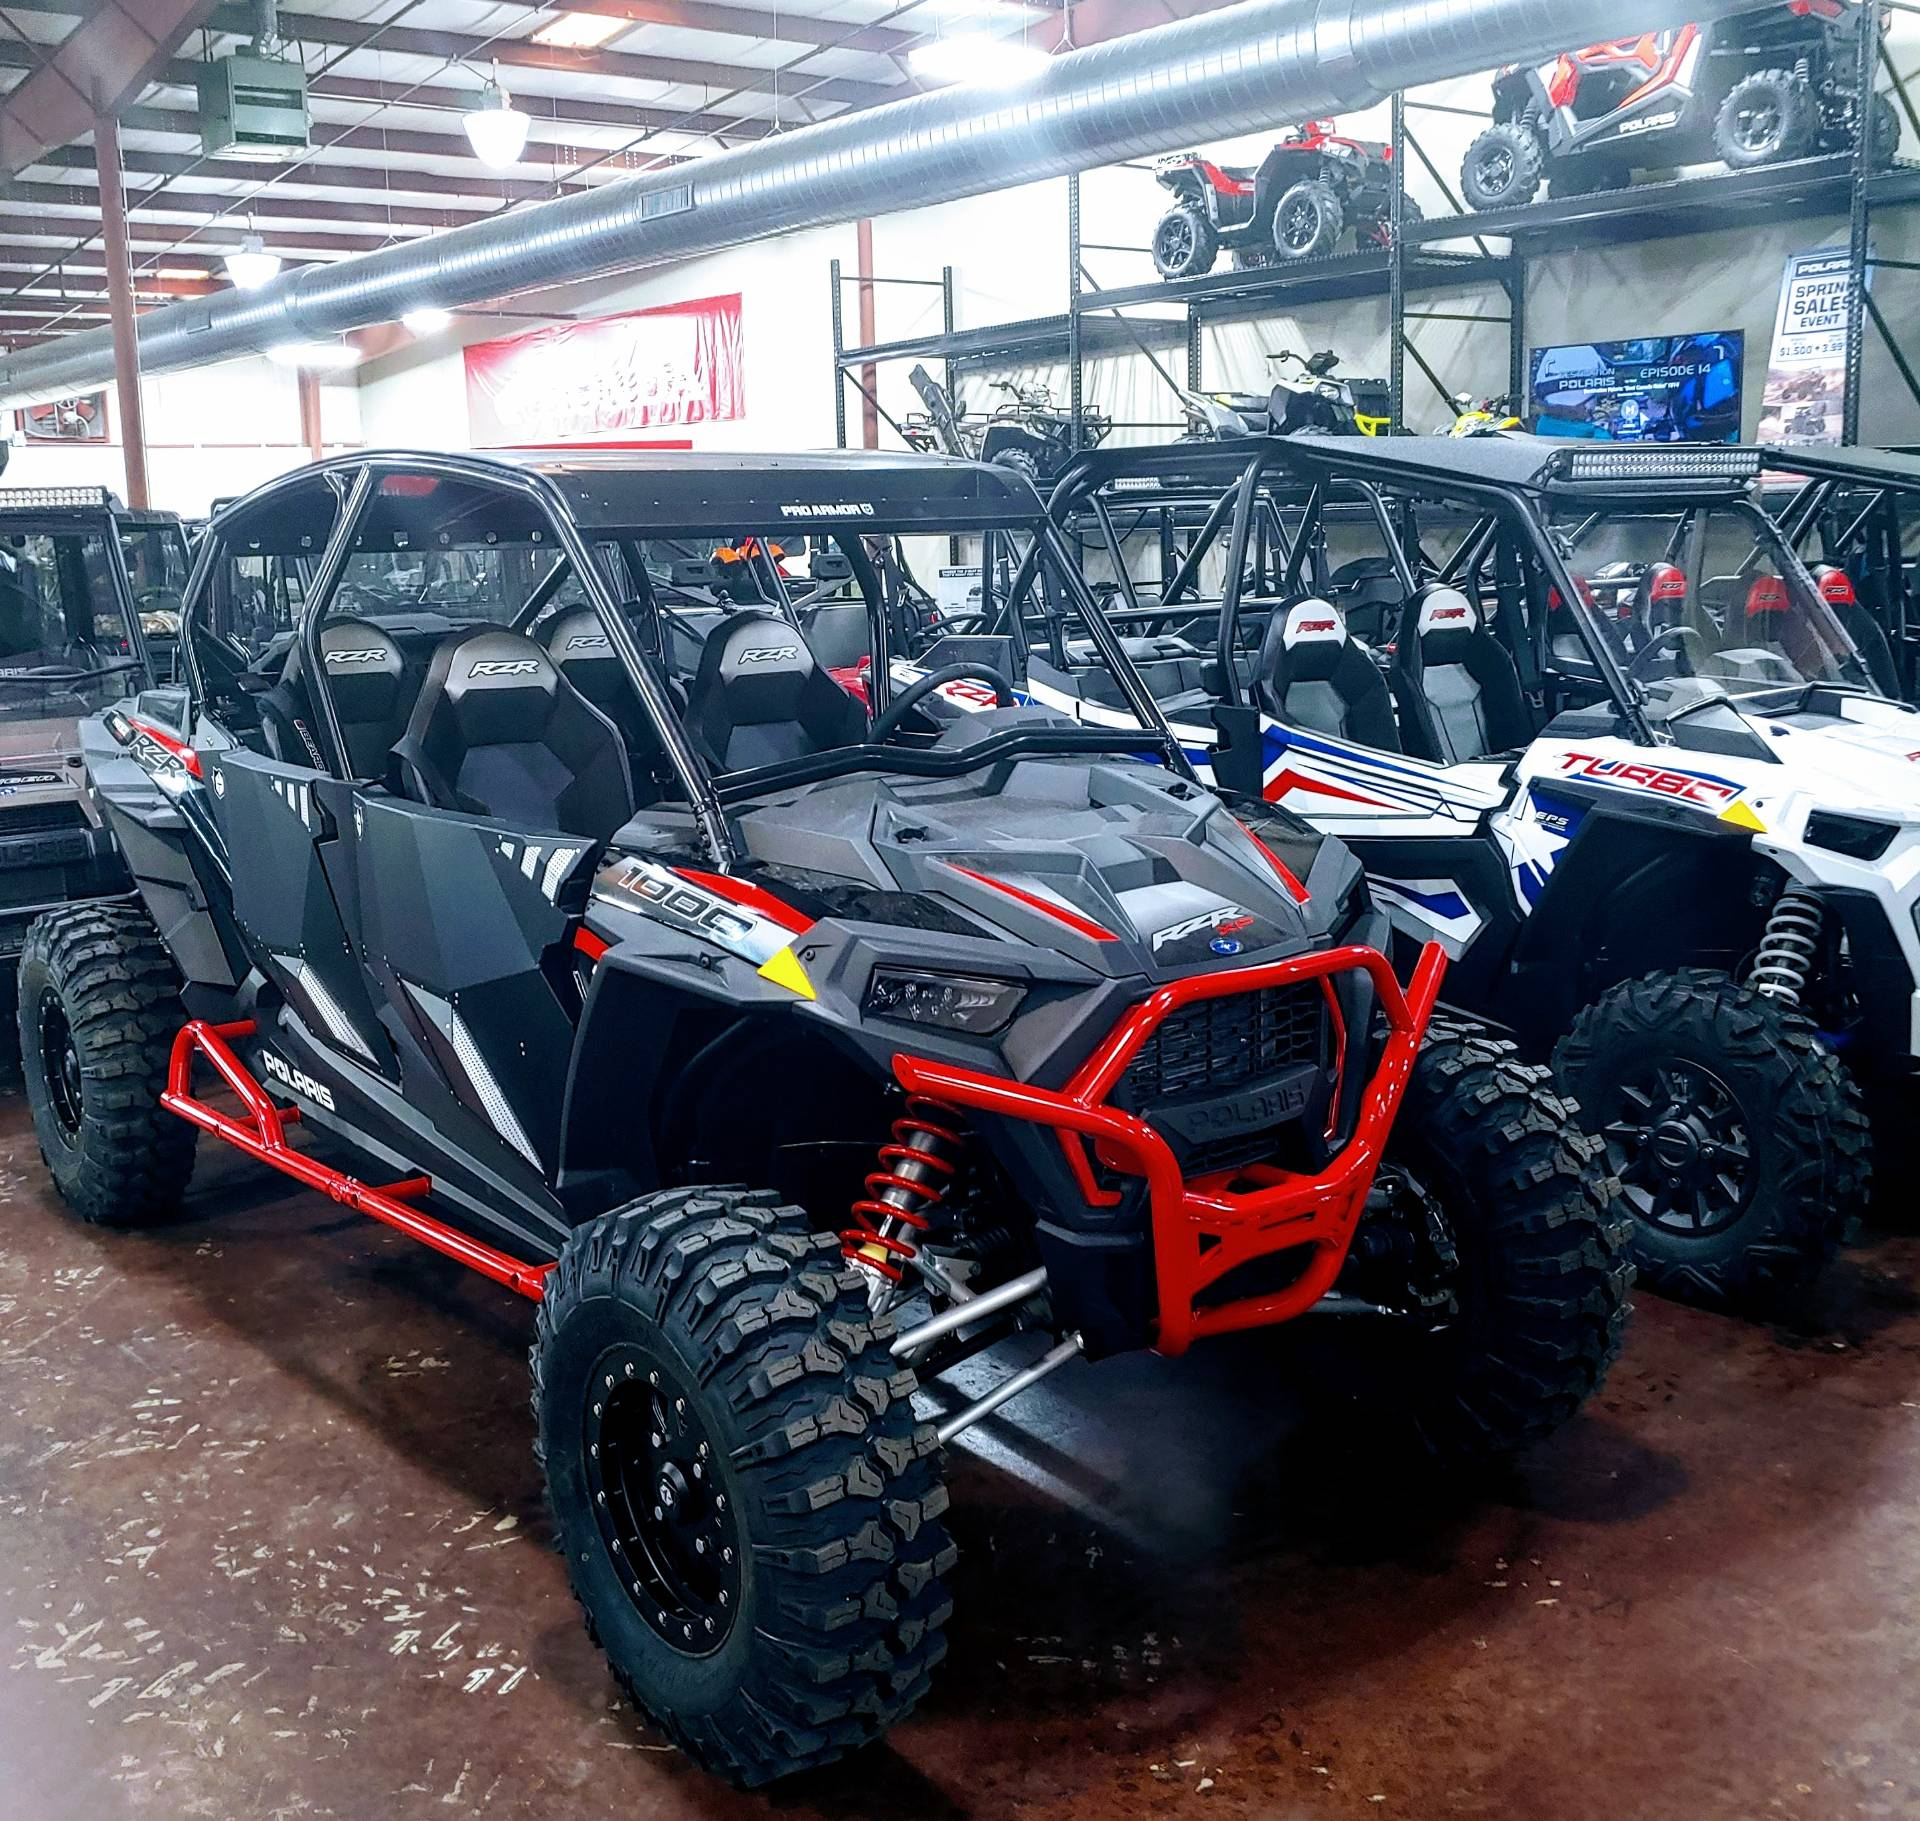 2019 Polaris RZR XP 4 1000 EPS in Statesville, North Carolina - Photo 3